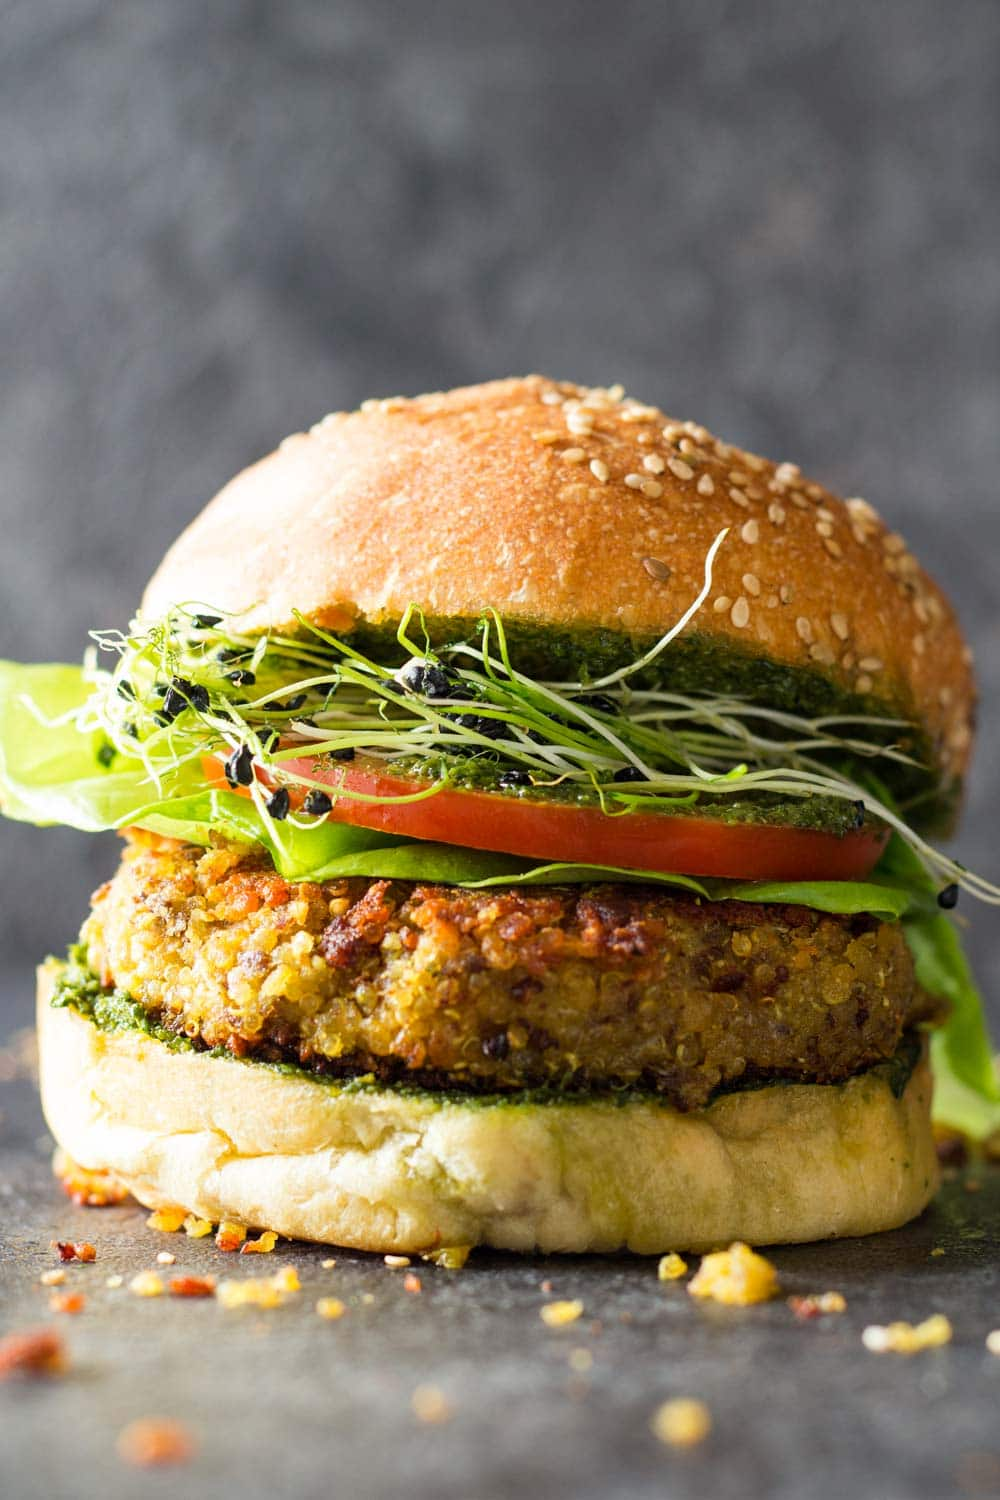 Side view of quinoa burger in a bun with lettuce, tomato, micro greens and basil pesto sauce.